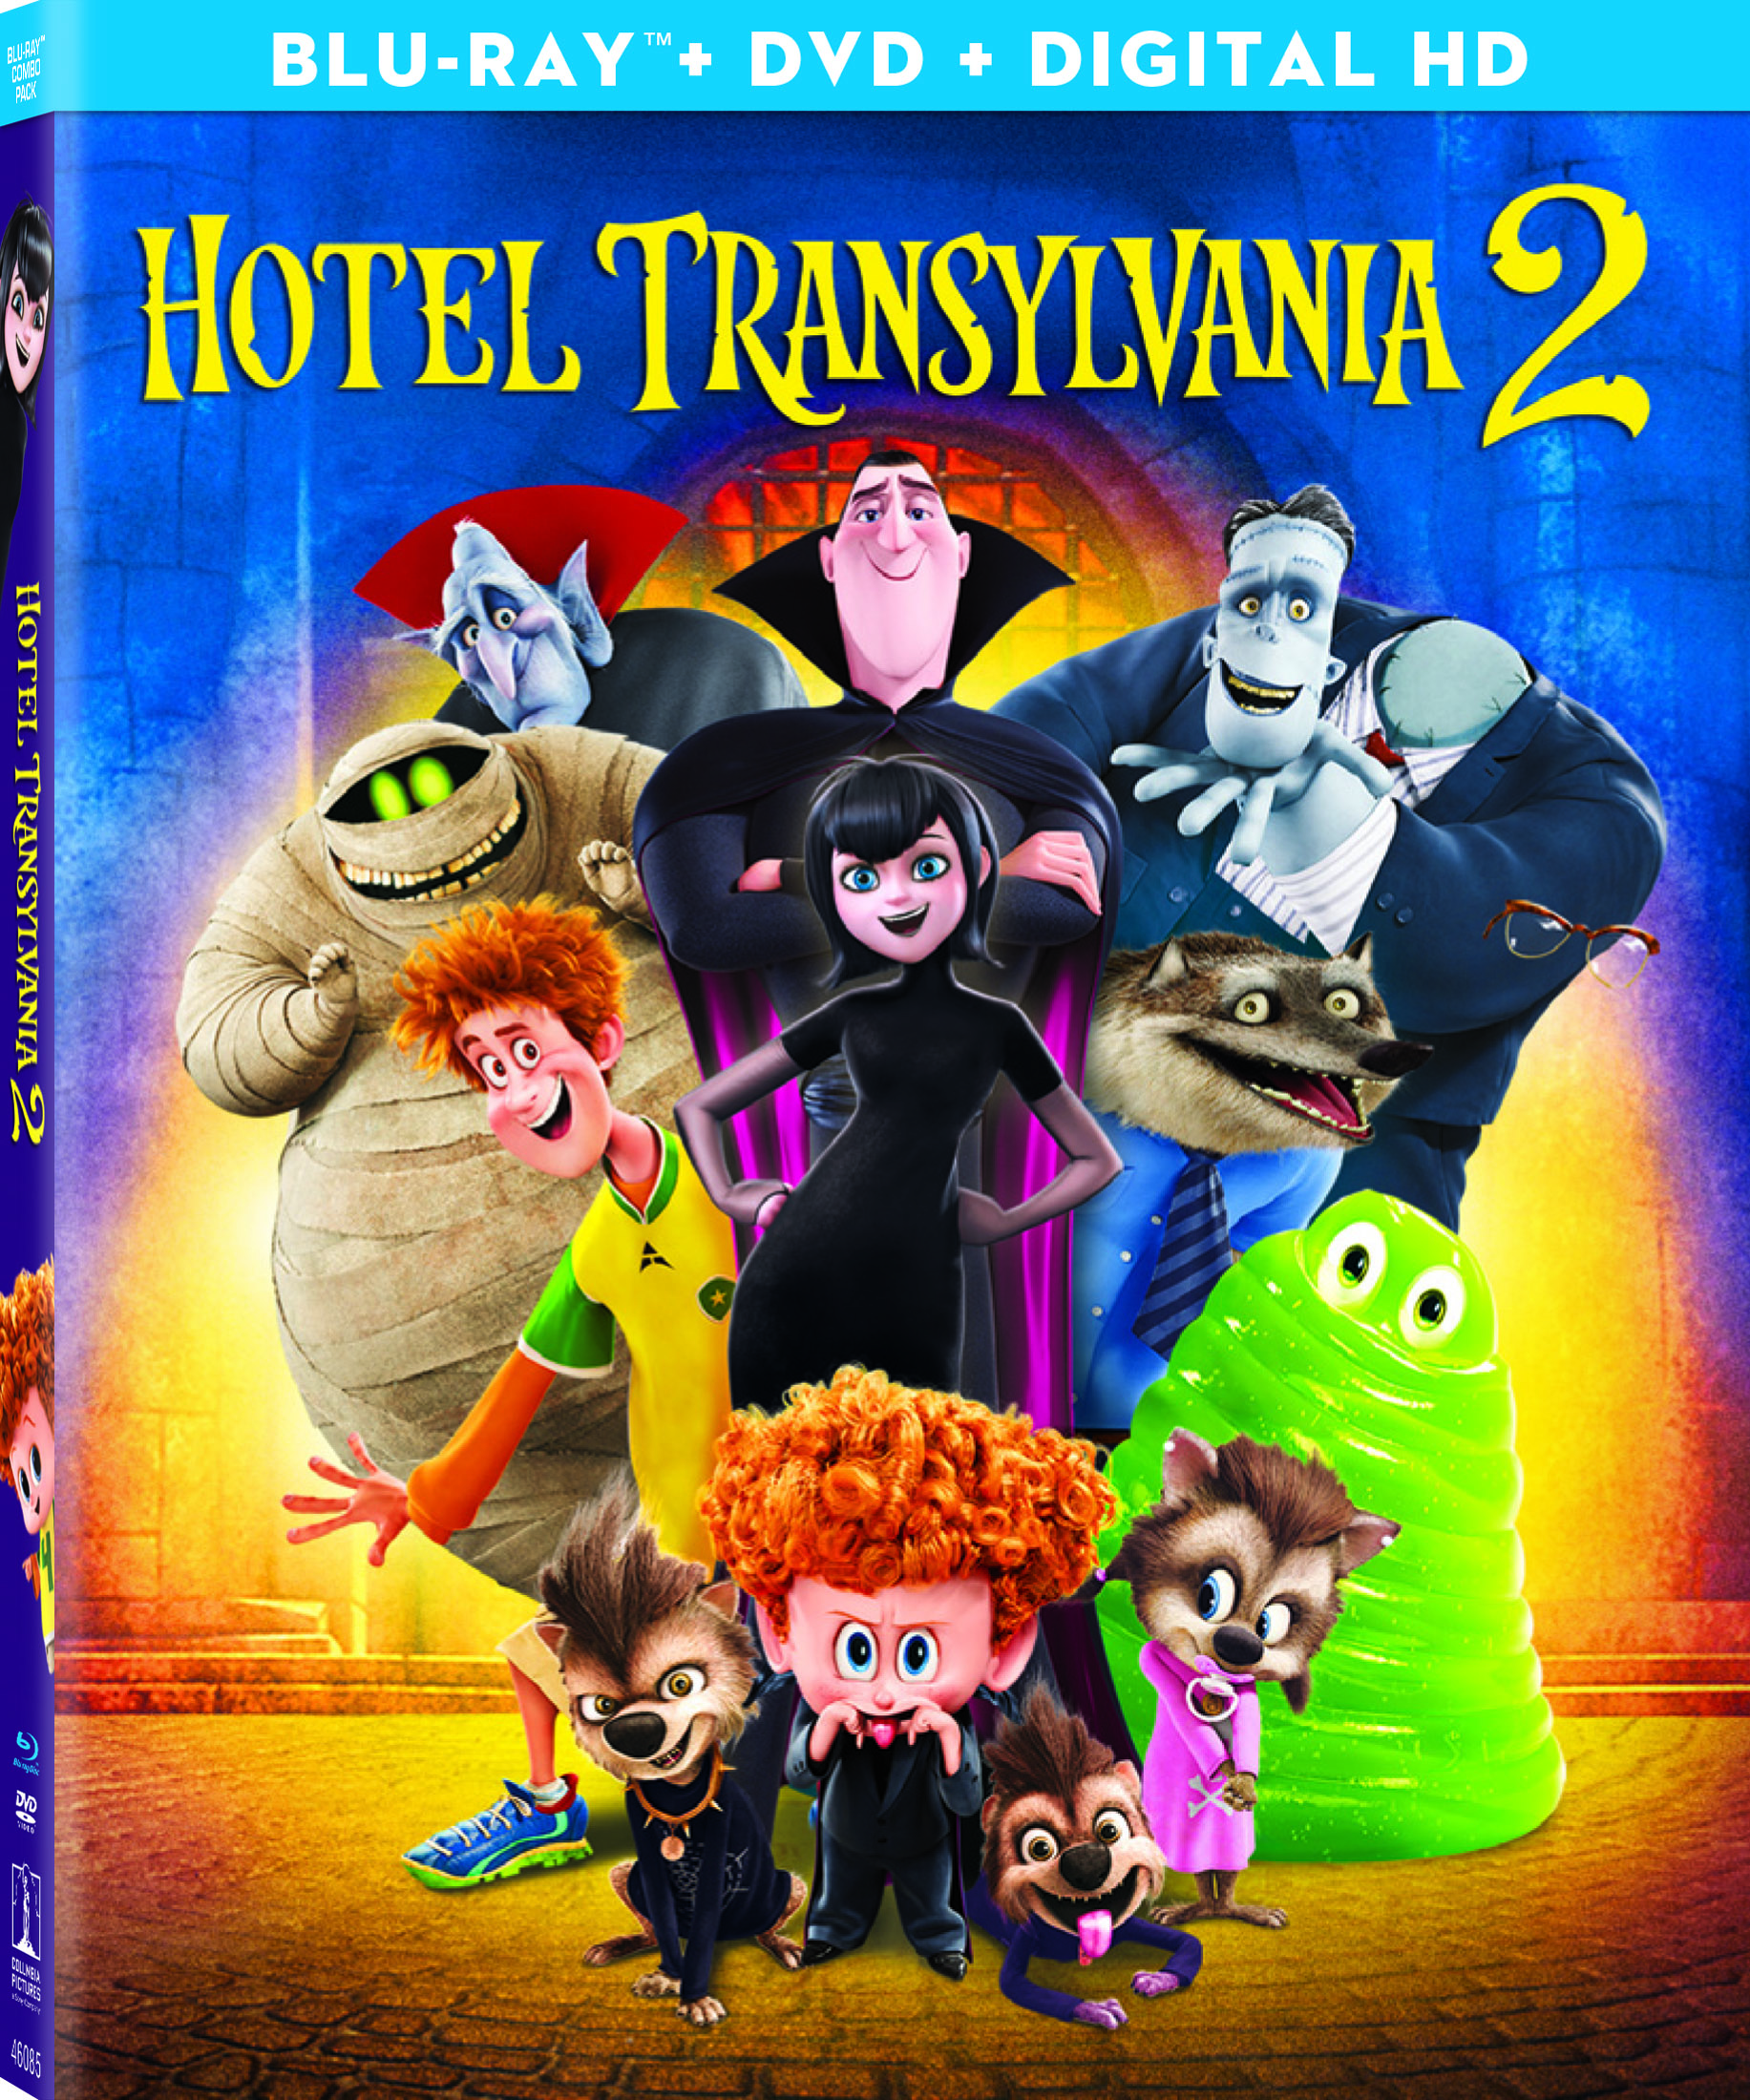 Book Your Stay In Hotel Transylvania 2 This January